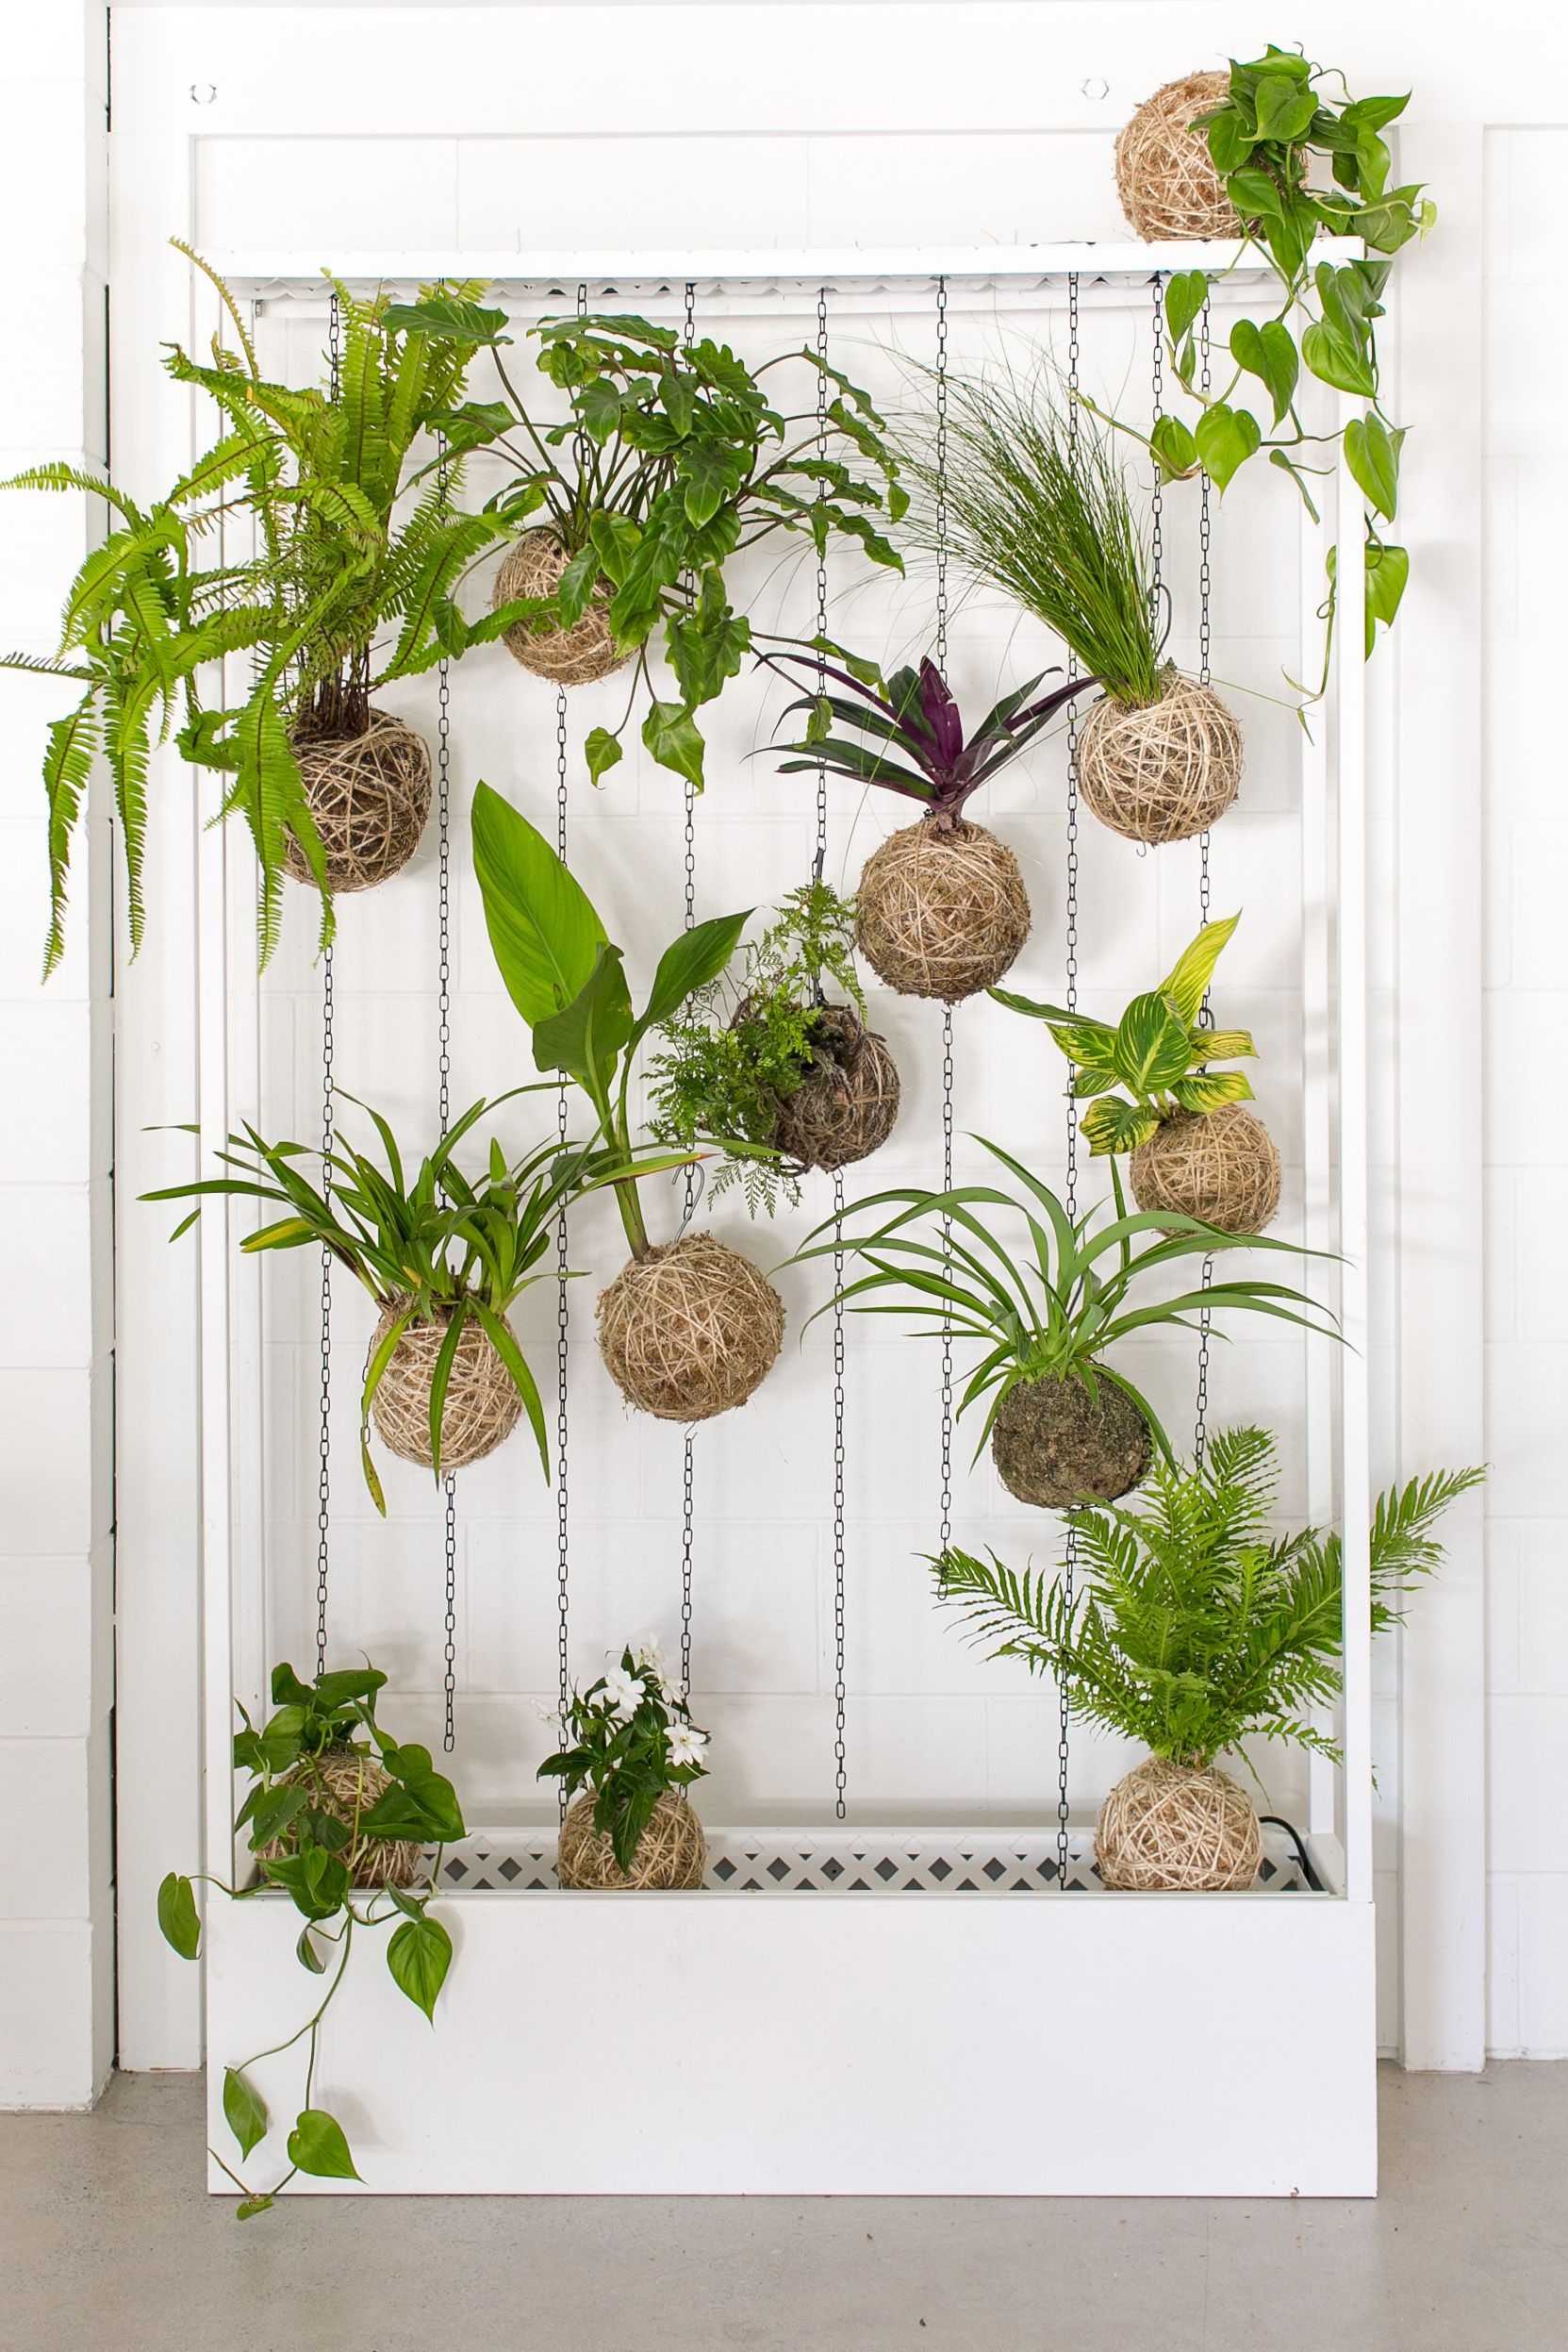 Indoor Small Plants Green Walls Plants Green Walls Plants Indoor Plants